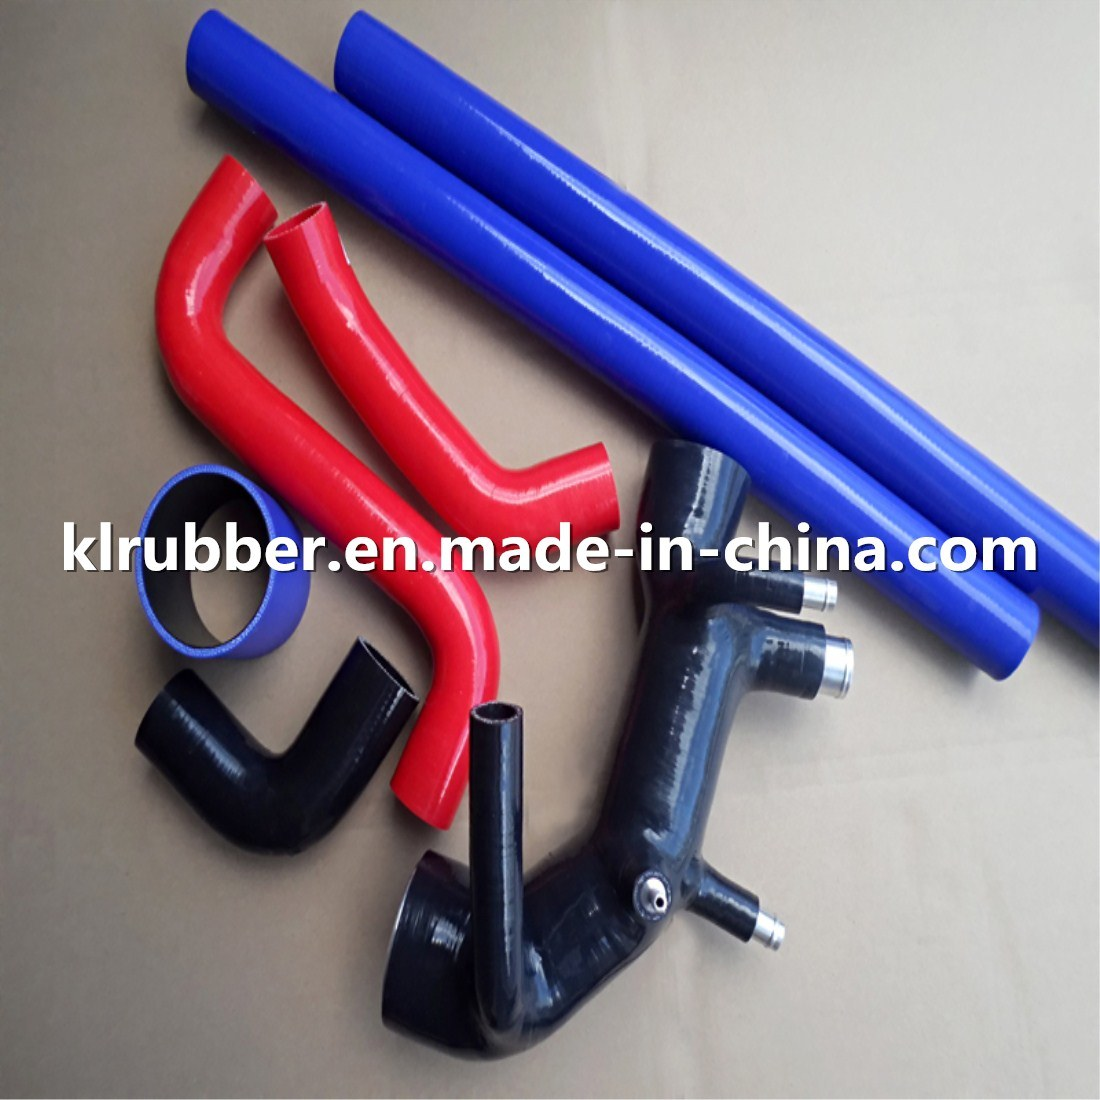 Automobile Silicone Hose Kits Radiator and Elbow Hose for Auto Parts